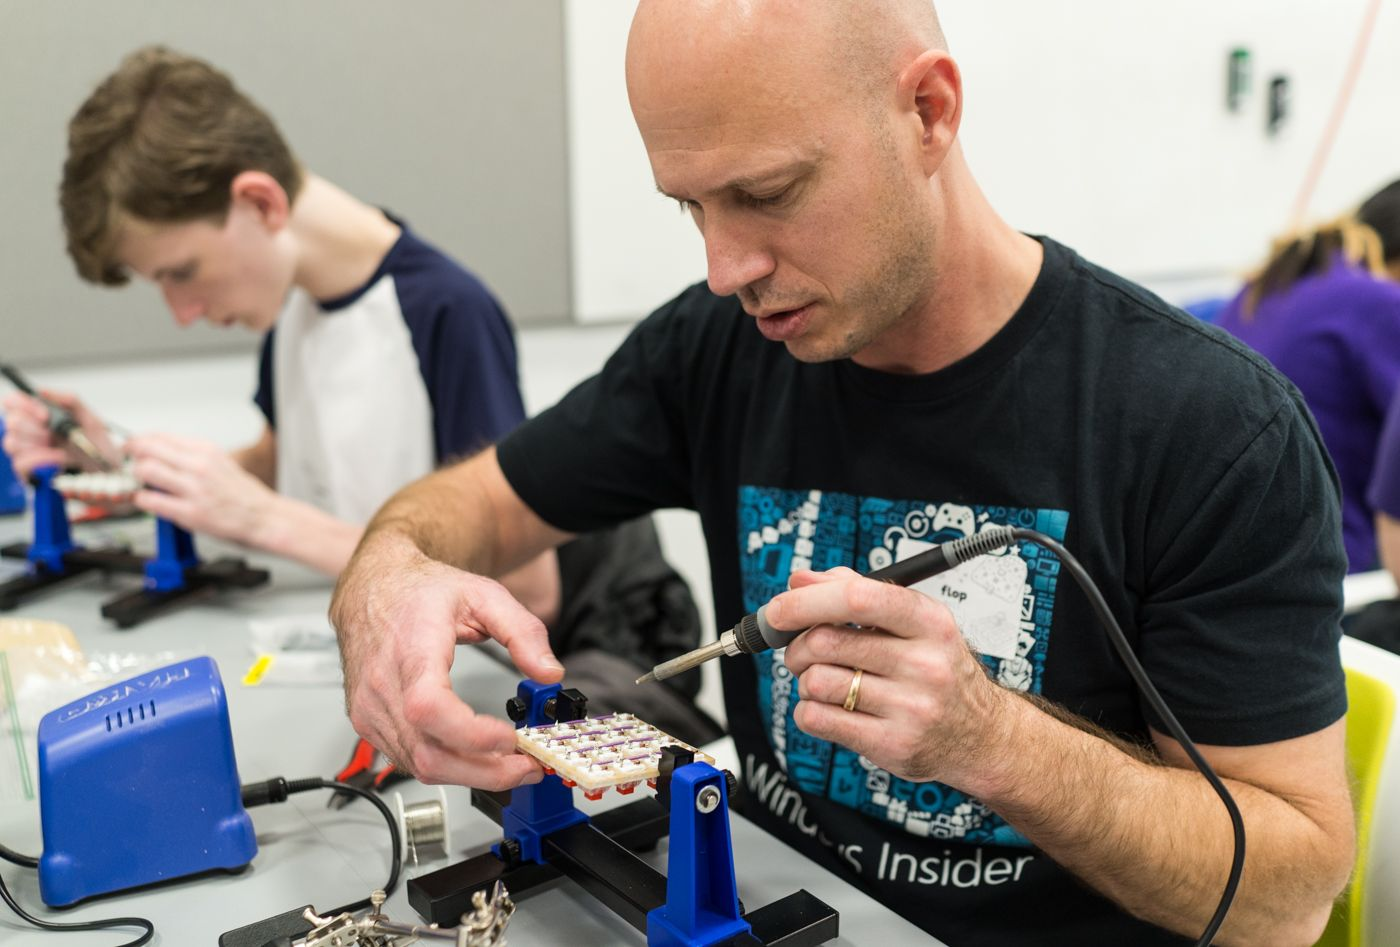 There were soldering and handwiring workshops as well. This is a necessary skill for building a keyboard from scratch.